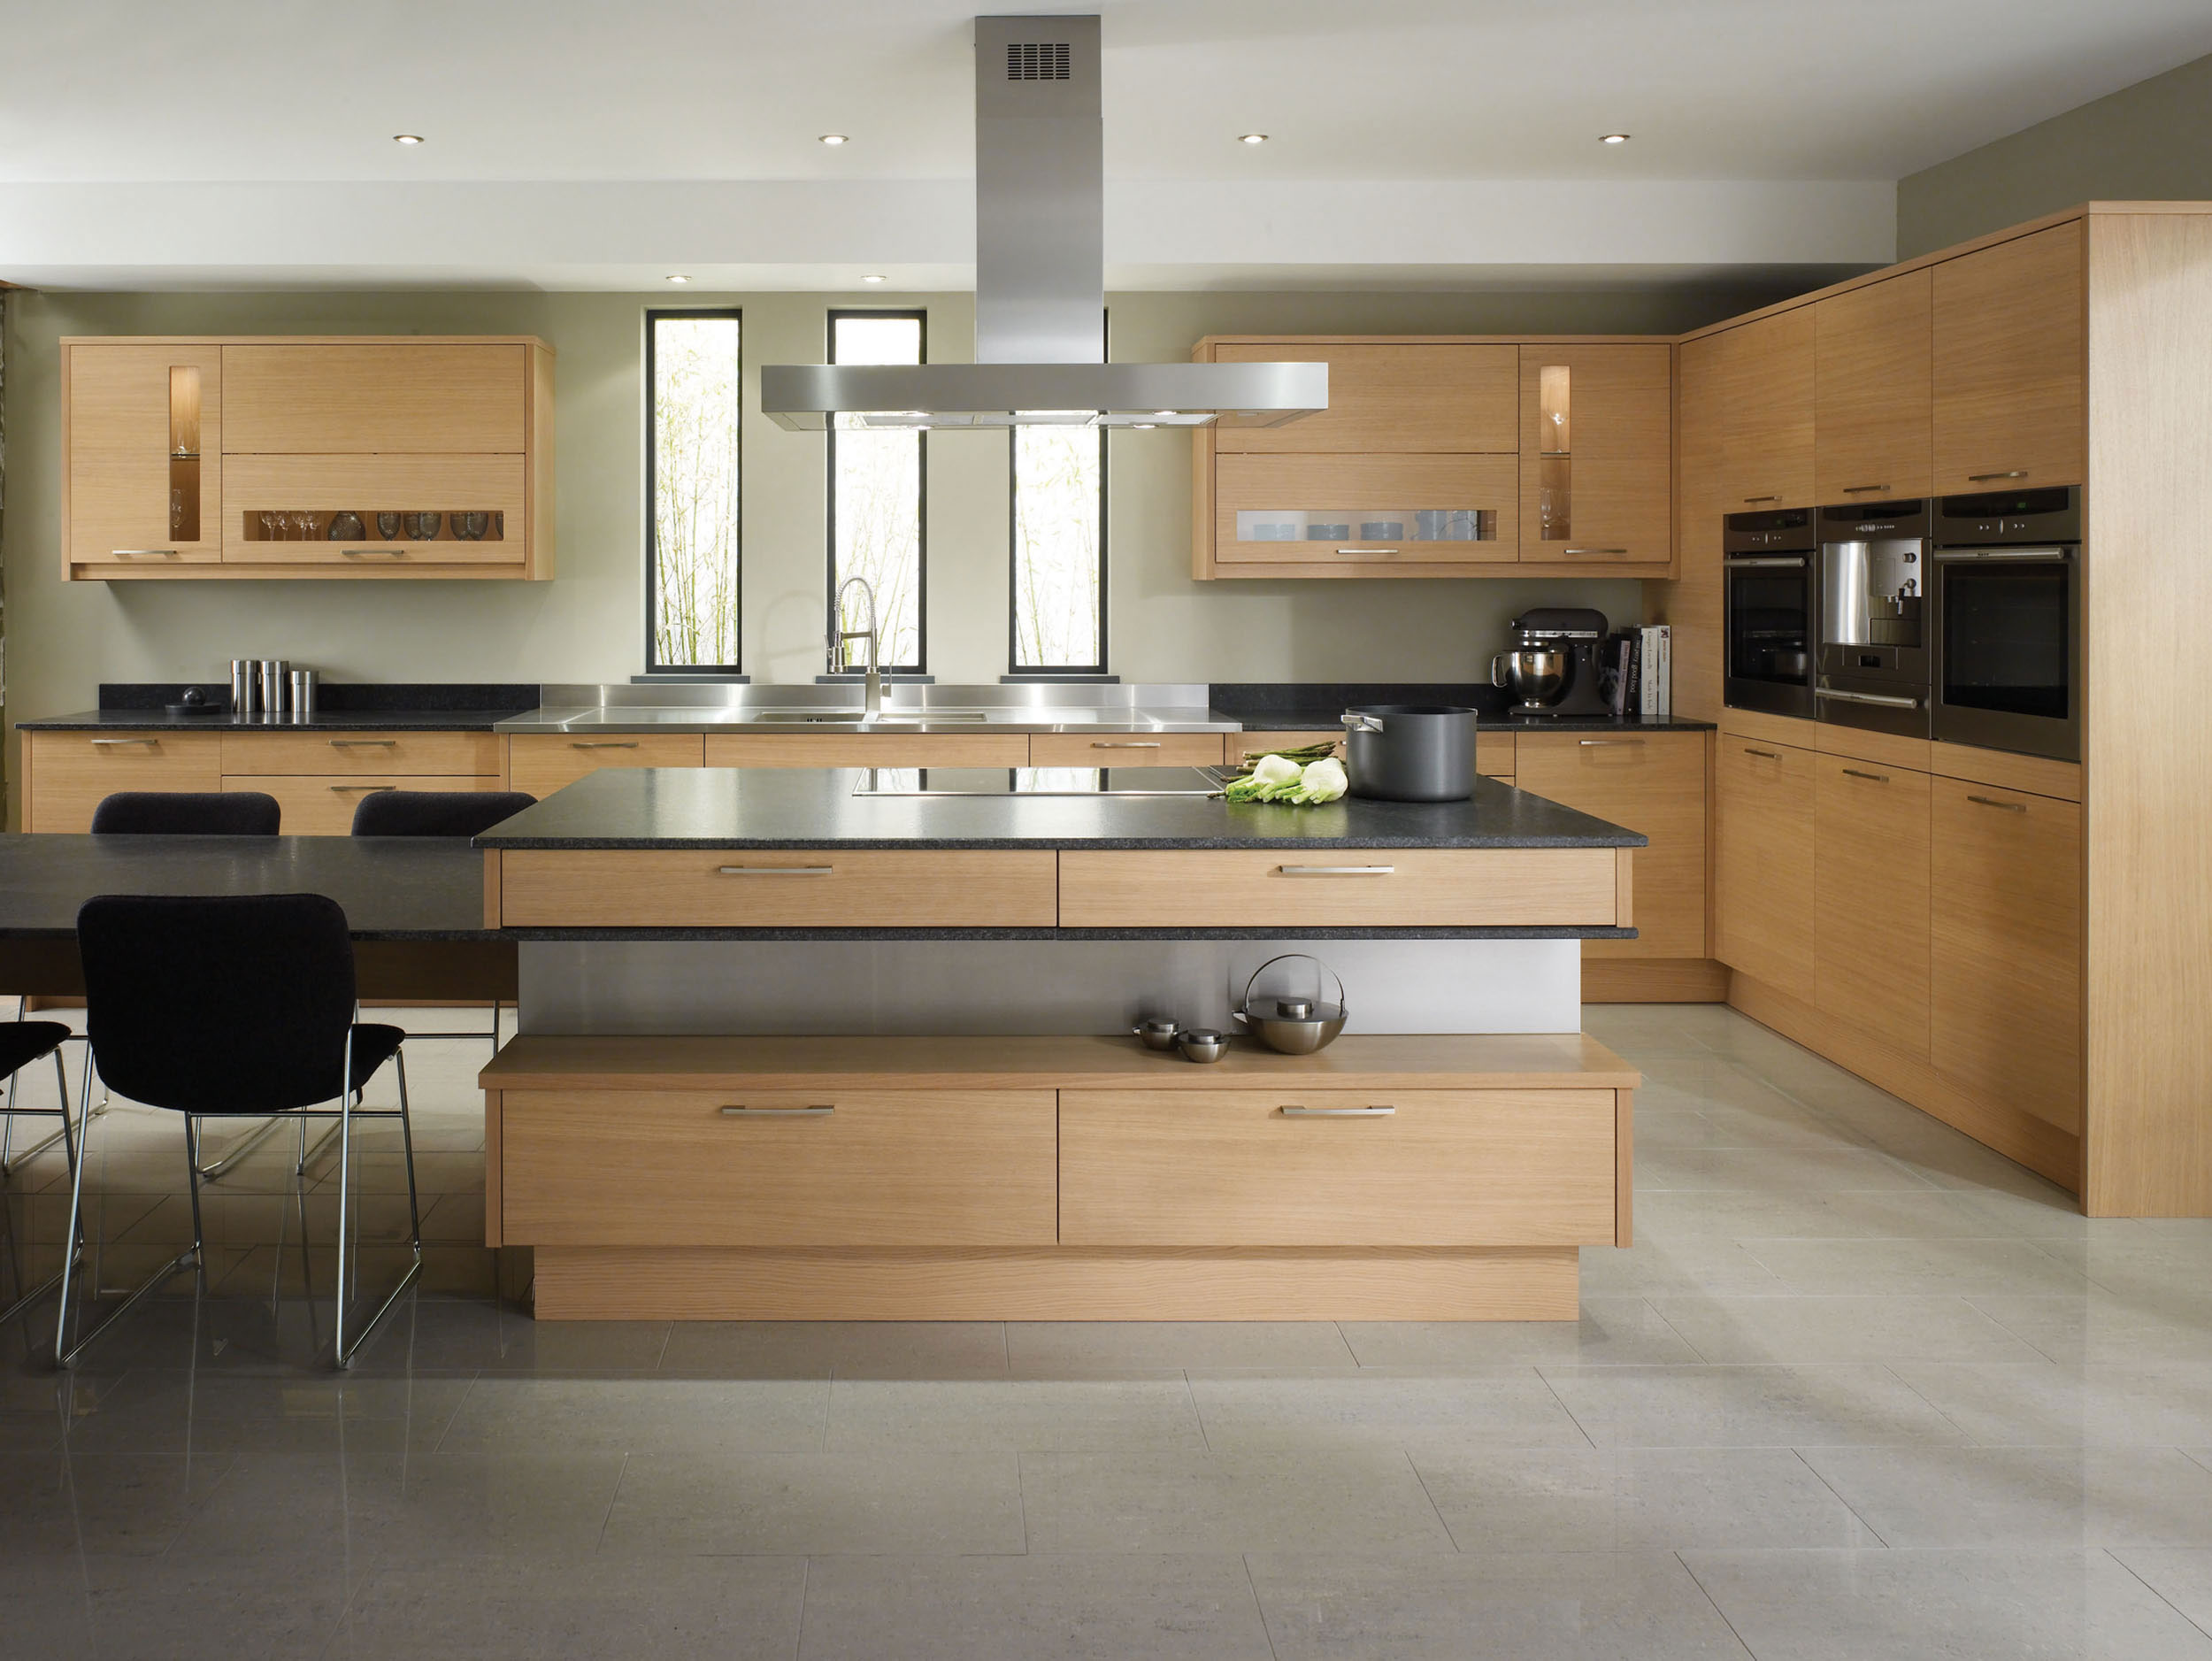 contemporary-ideas-for-above-kitchen-cabinets-kcn48